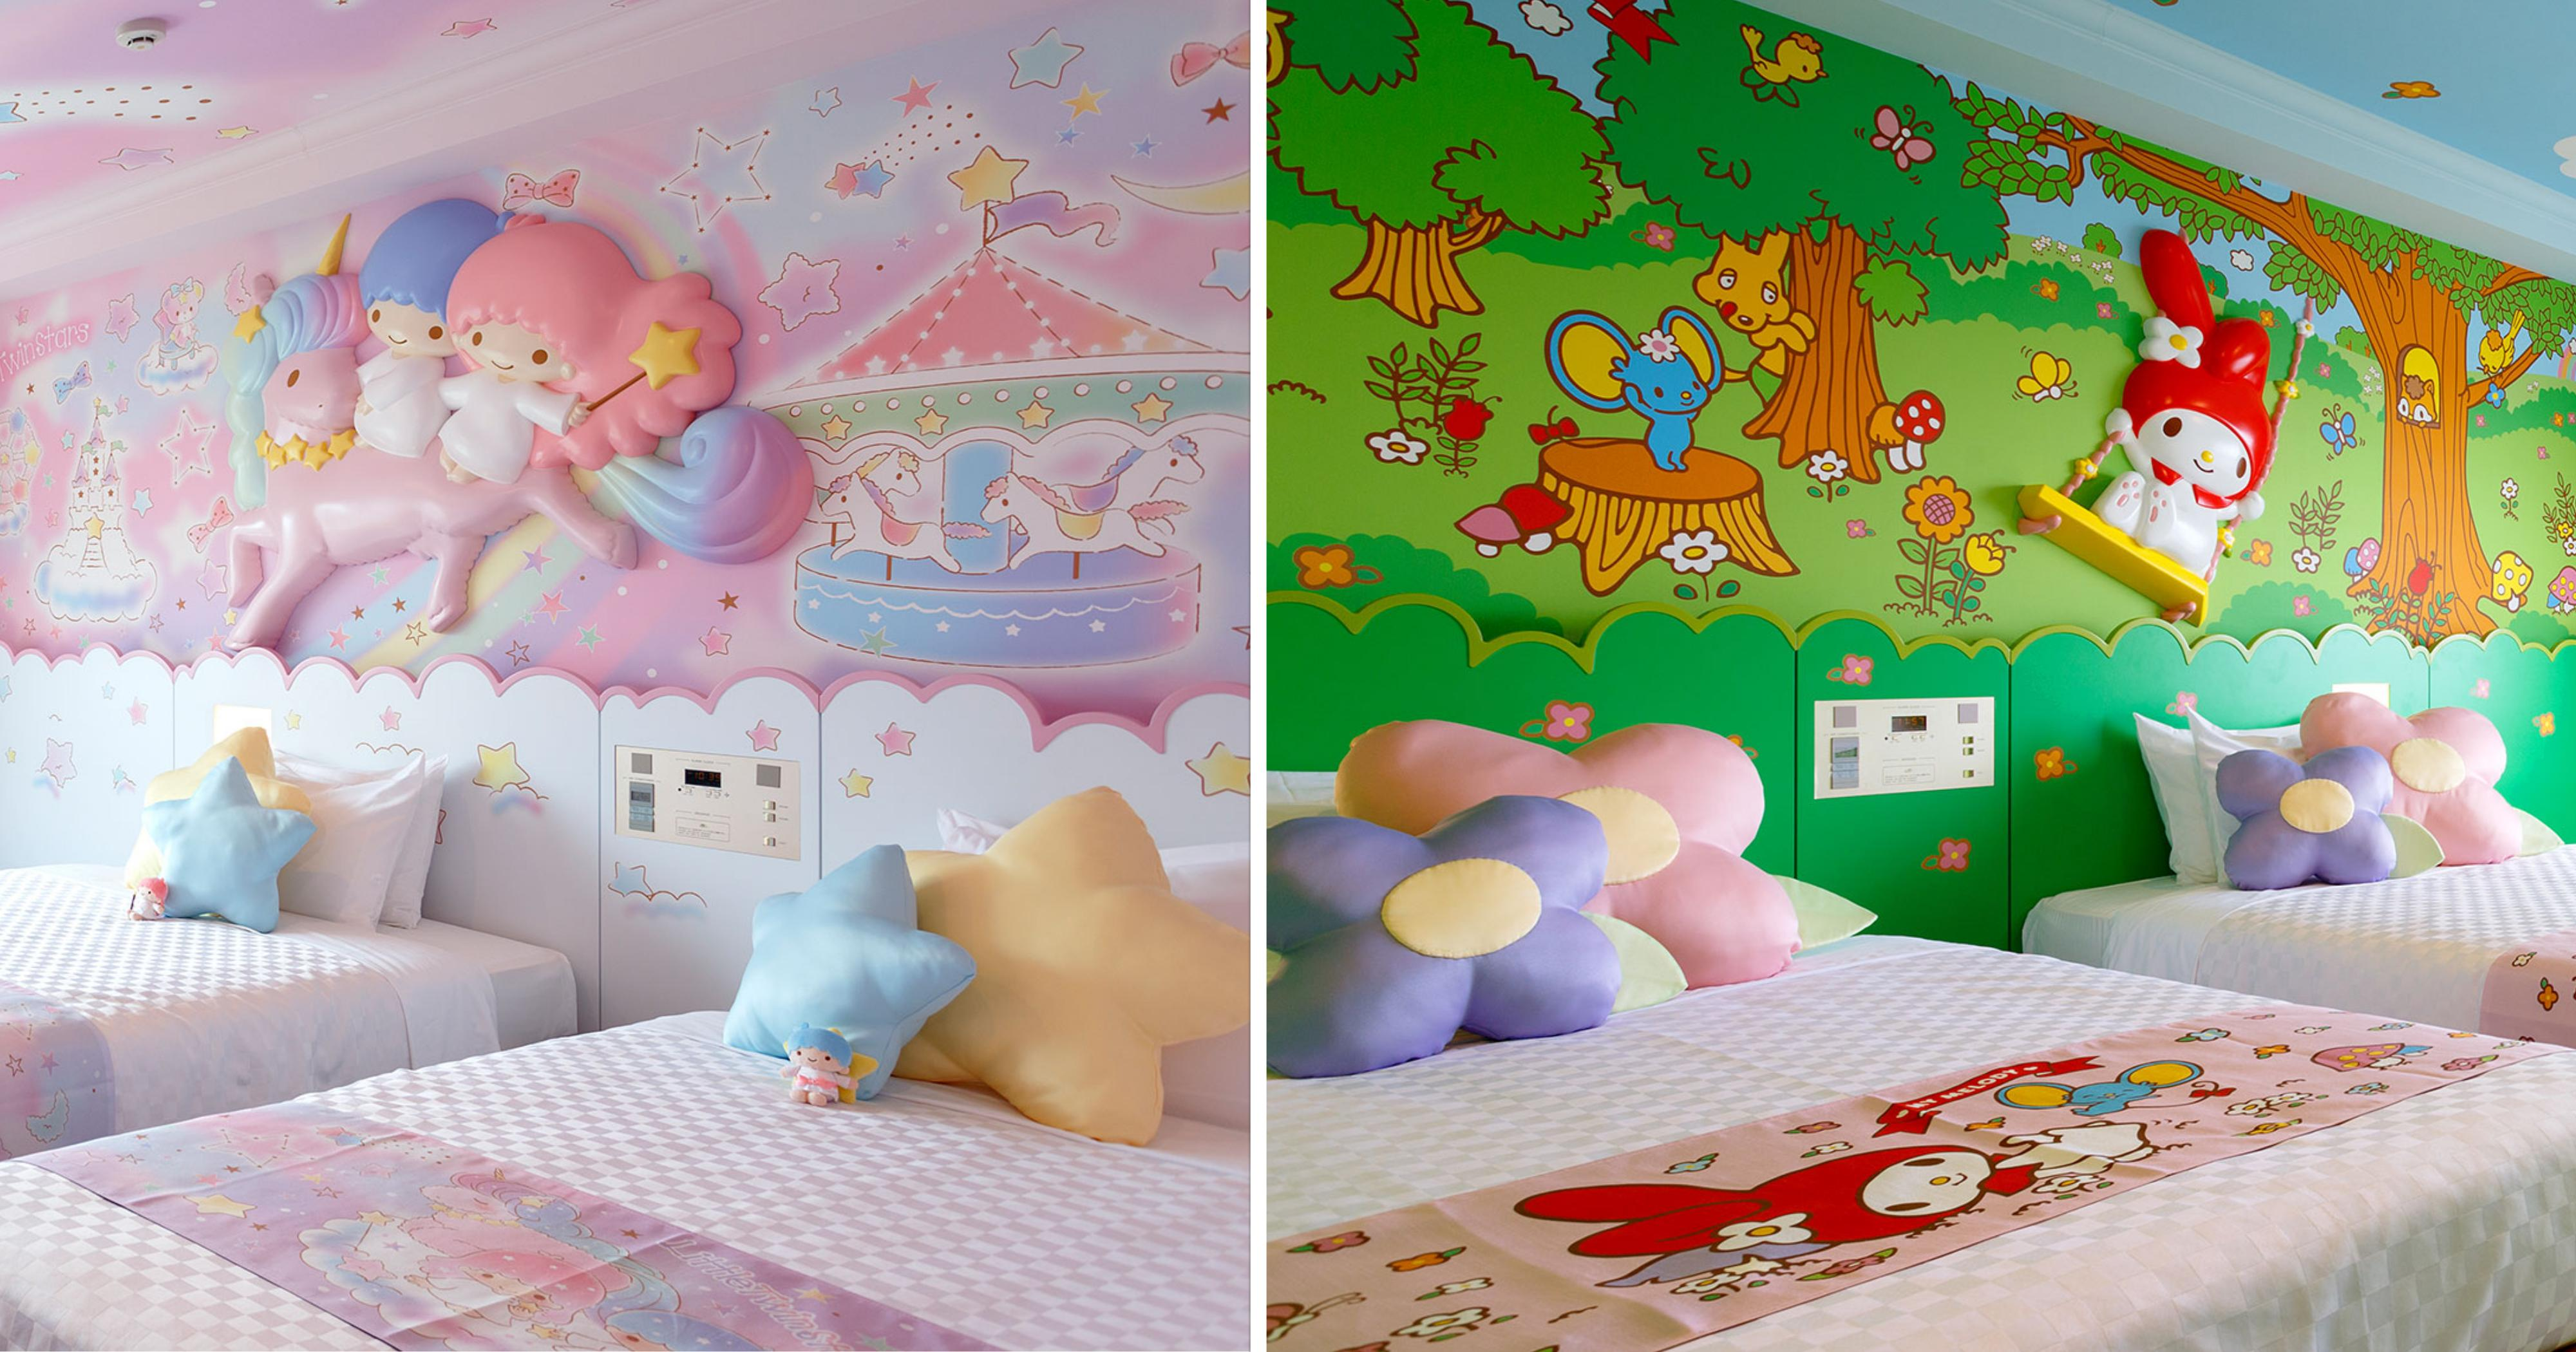 Tokyo Hotel Has My Melody Little Twin Stars Hello Kitty Themed Rooms Mothership Sg News From Singapore Asia And Around The World